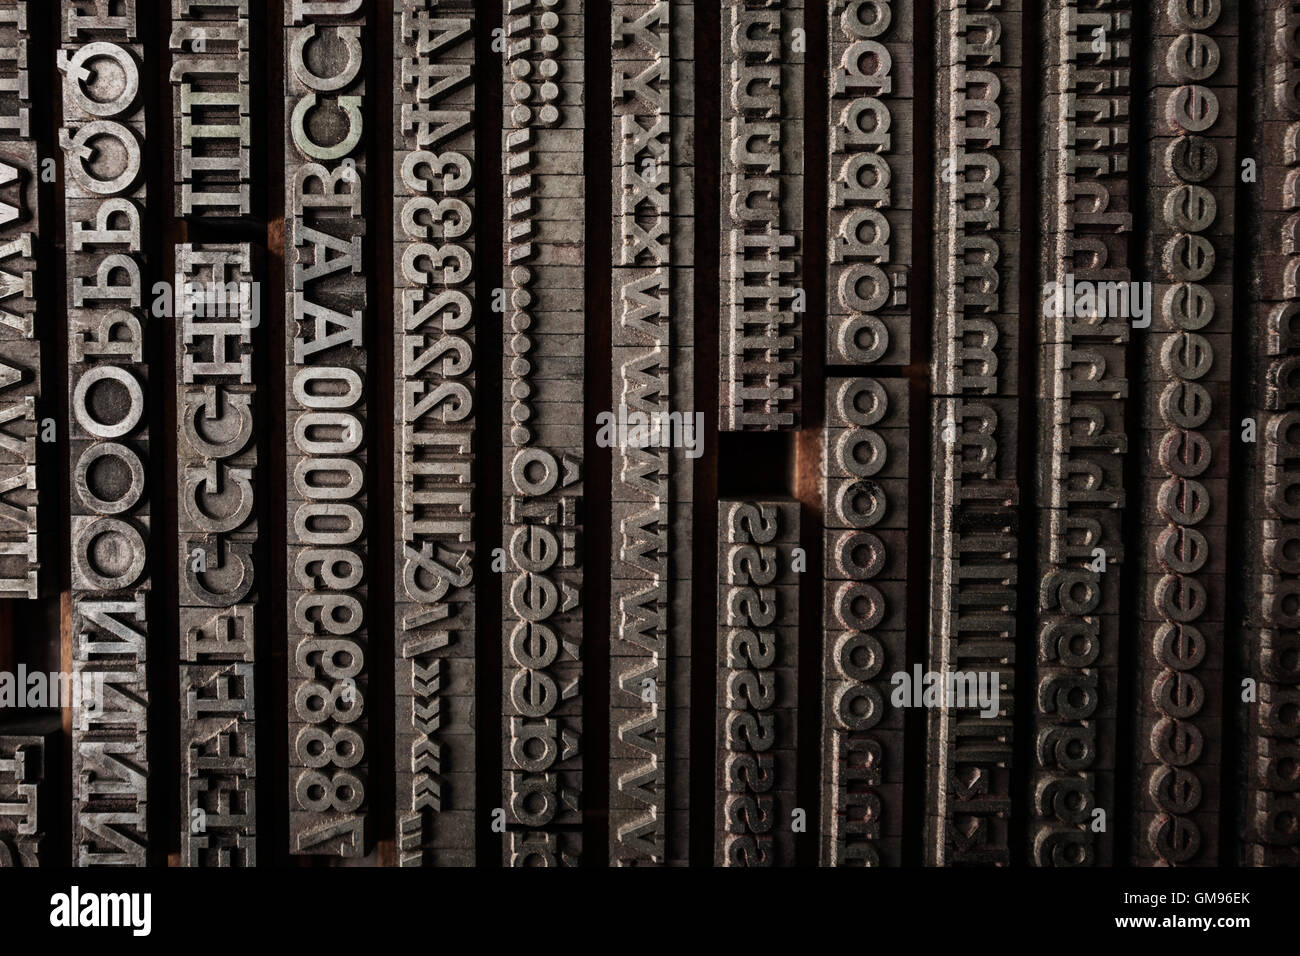 Lettrs in typesetting shop - Stock Image